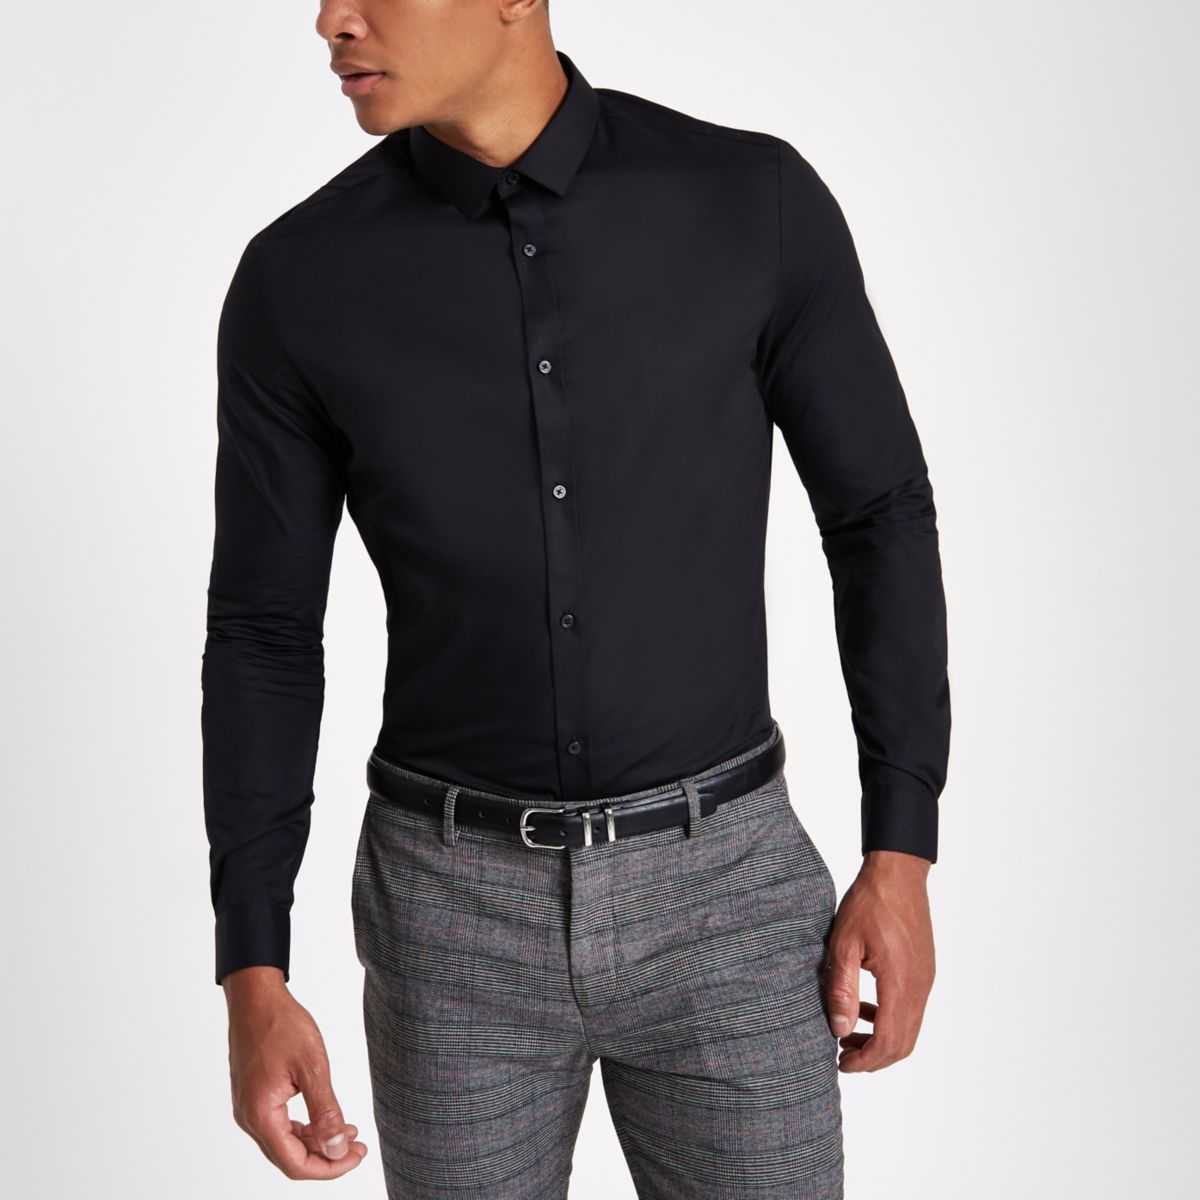 Heart and Dagger smart shirt in black with long sleeves. £ Heart and Dagger smart shirt in white with long sleeves. £ River Island slim fit shirt in navy. £ River Island muscle fit smart shirt in black. £ ASOS DESIGN skinny sateen shirt in black with navy sequin bib.